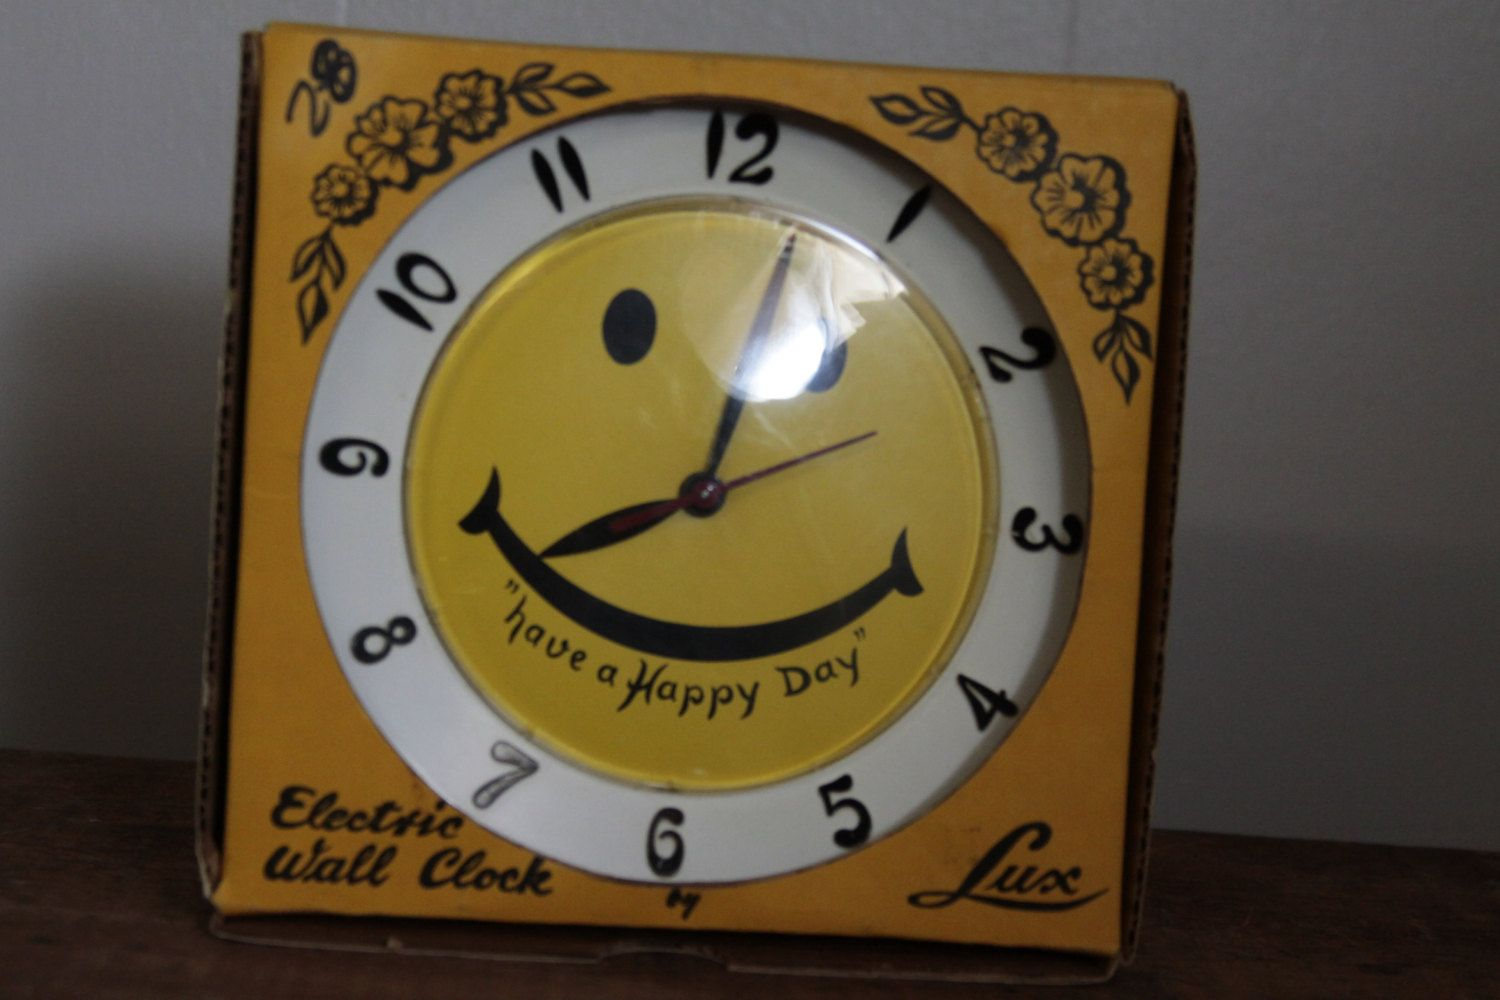 Atomic Wall Clocks Made In Usa Vintage Lux Clock Yellow Smiley Face Have A Happy Day